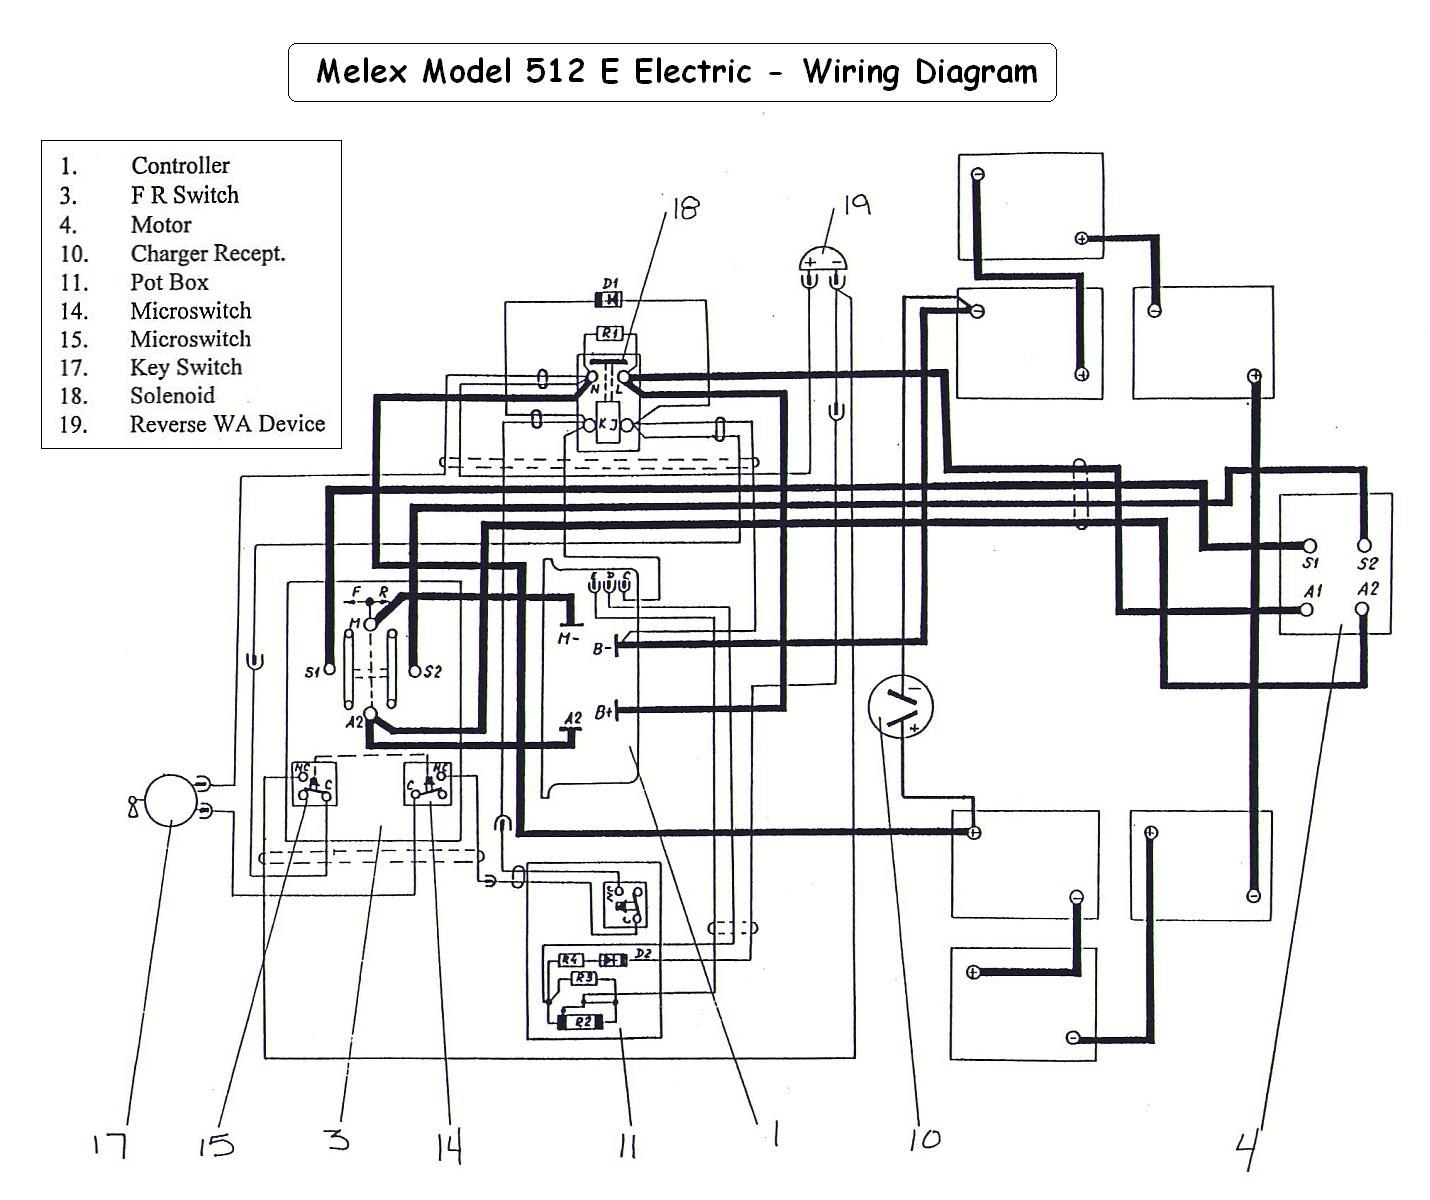 wiring diagrams ezgo 36 volt for 12 with Melex Golf Cart Wiring Diagram on Club Car 36 Volt Battery Wiring Diagram in addition 3xzju Looking Wireing Diagram 1987 1988 Ezgo Golf as well 12 Volt Golf Cart Wiring Diagram besides Club Battery Wiring Fb8OPcbKqJ 2S2IWPd9n8r1FQchUa63fbLbOXPy MWA moreover Ez Go Golf Cart Ignition Switch Wiring Diagram.